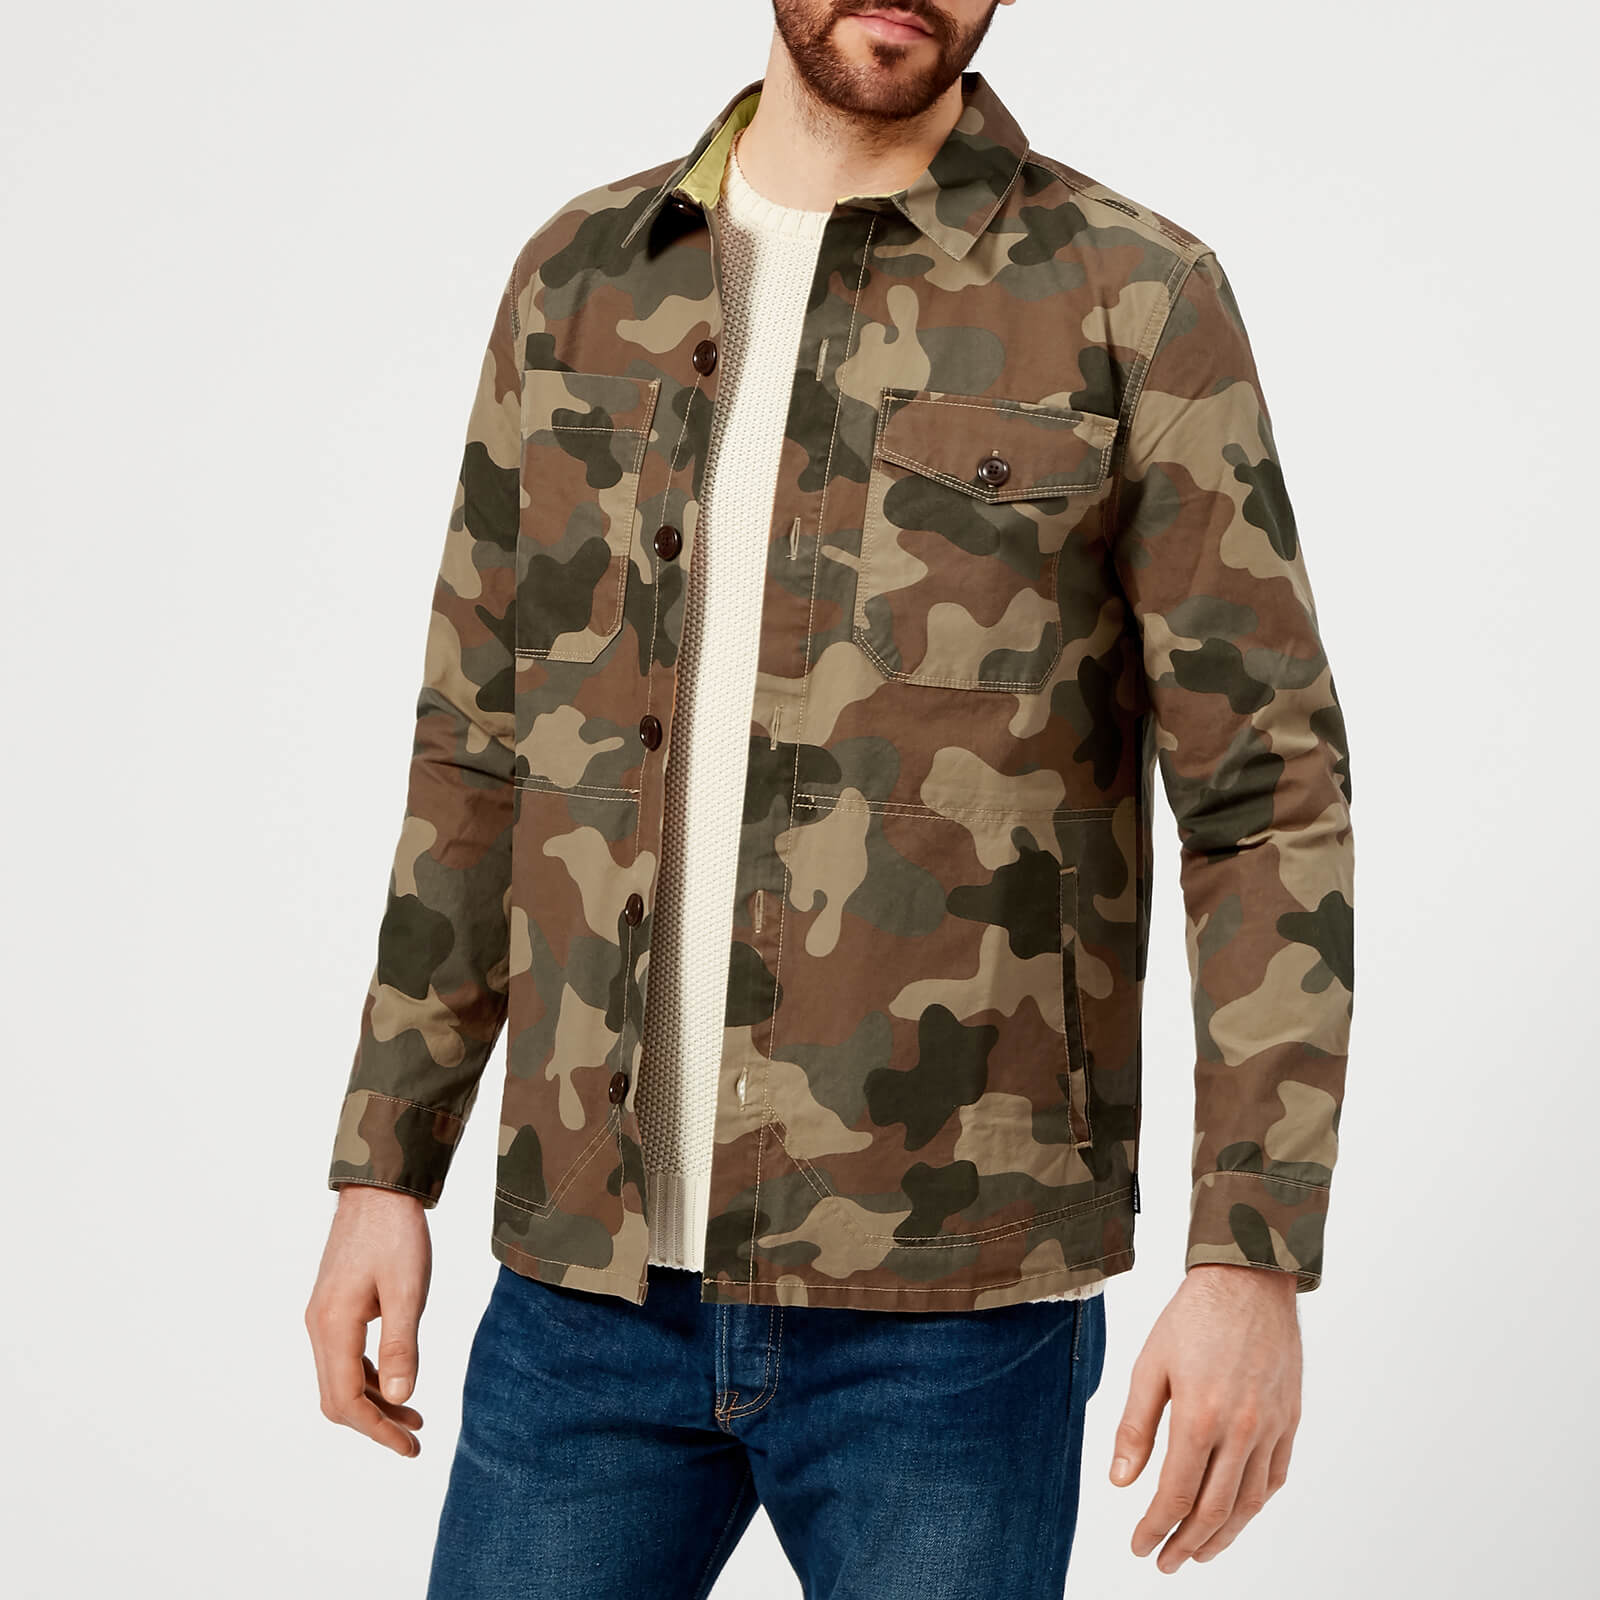 1a6b1ec37e6e4 Barbour Heritage Men's Camo Button Through Overshirt - Olive - Free UK  Delivery over £50